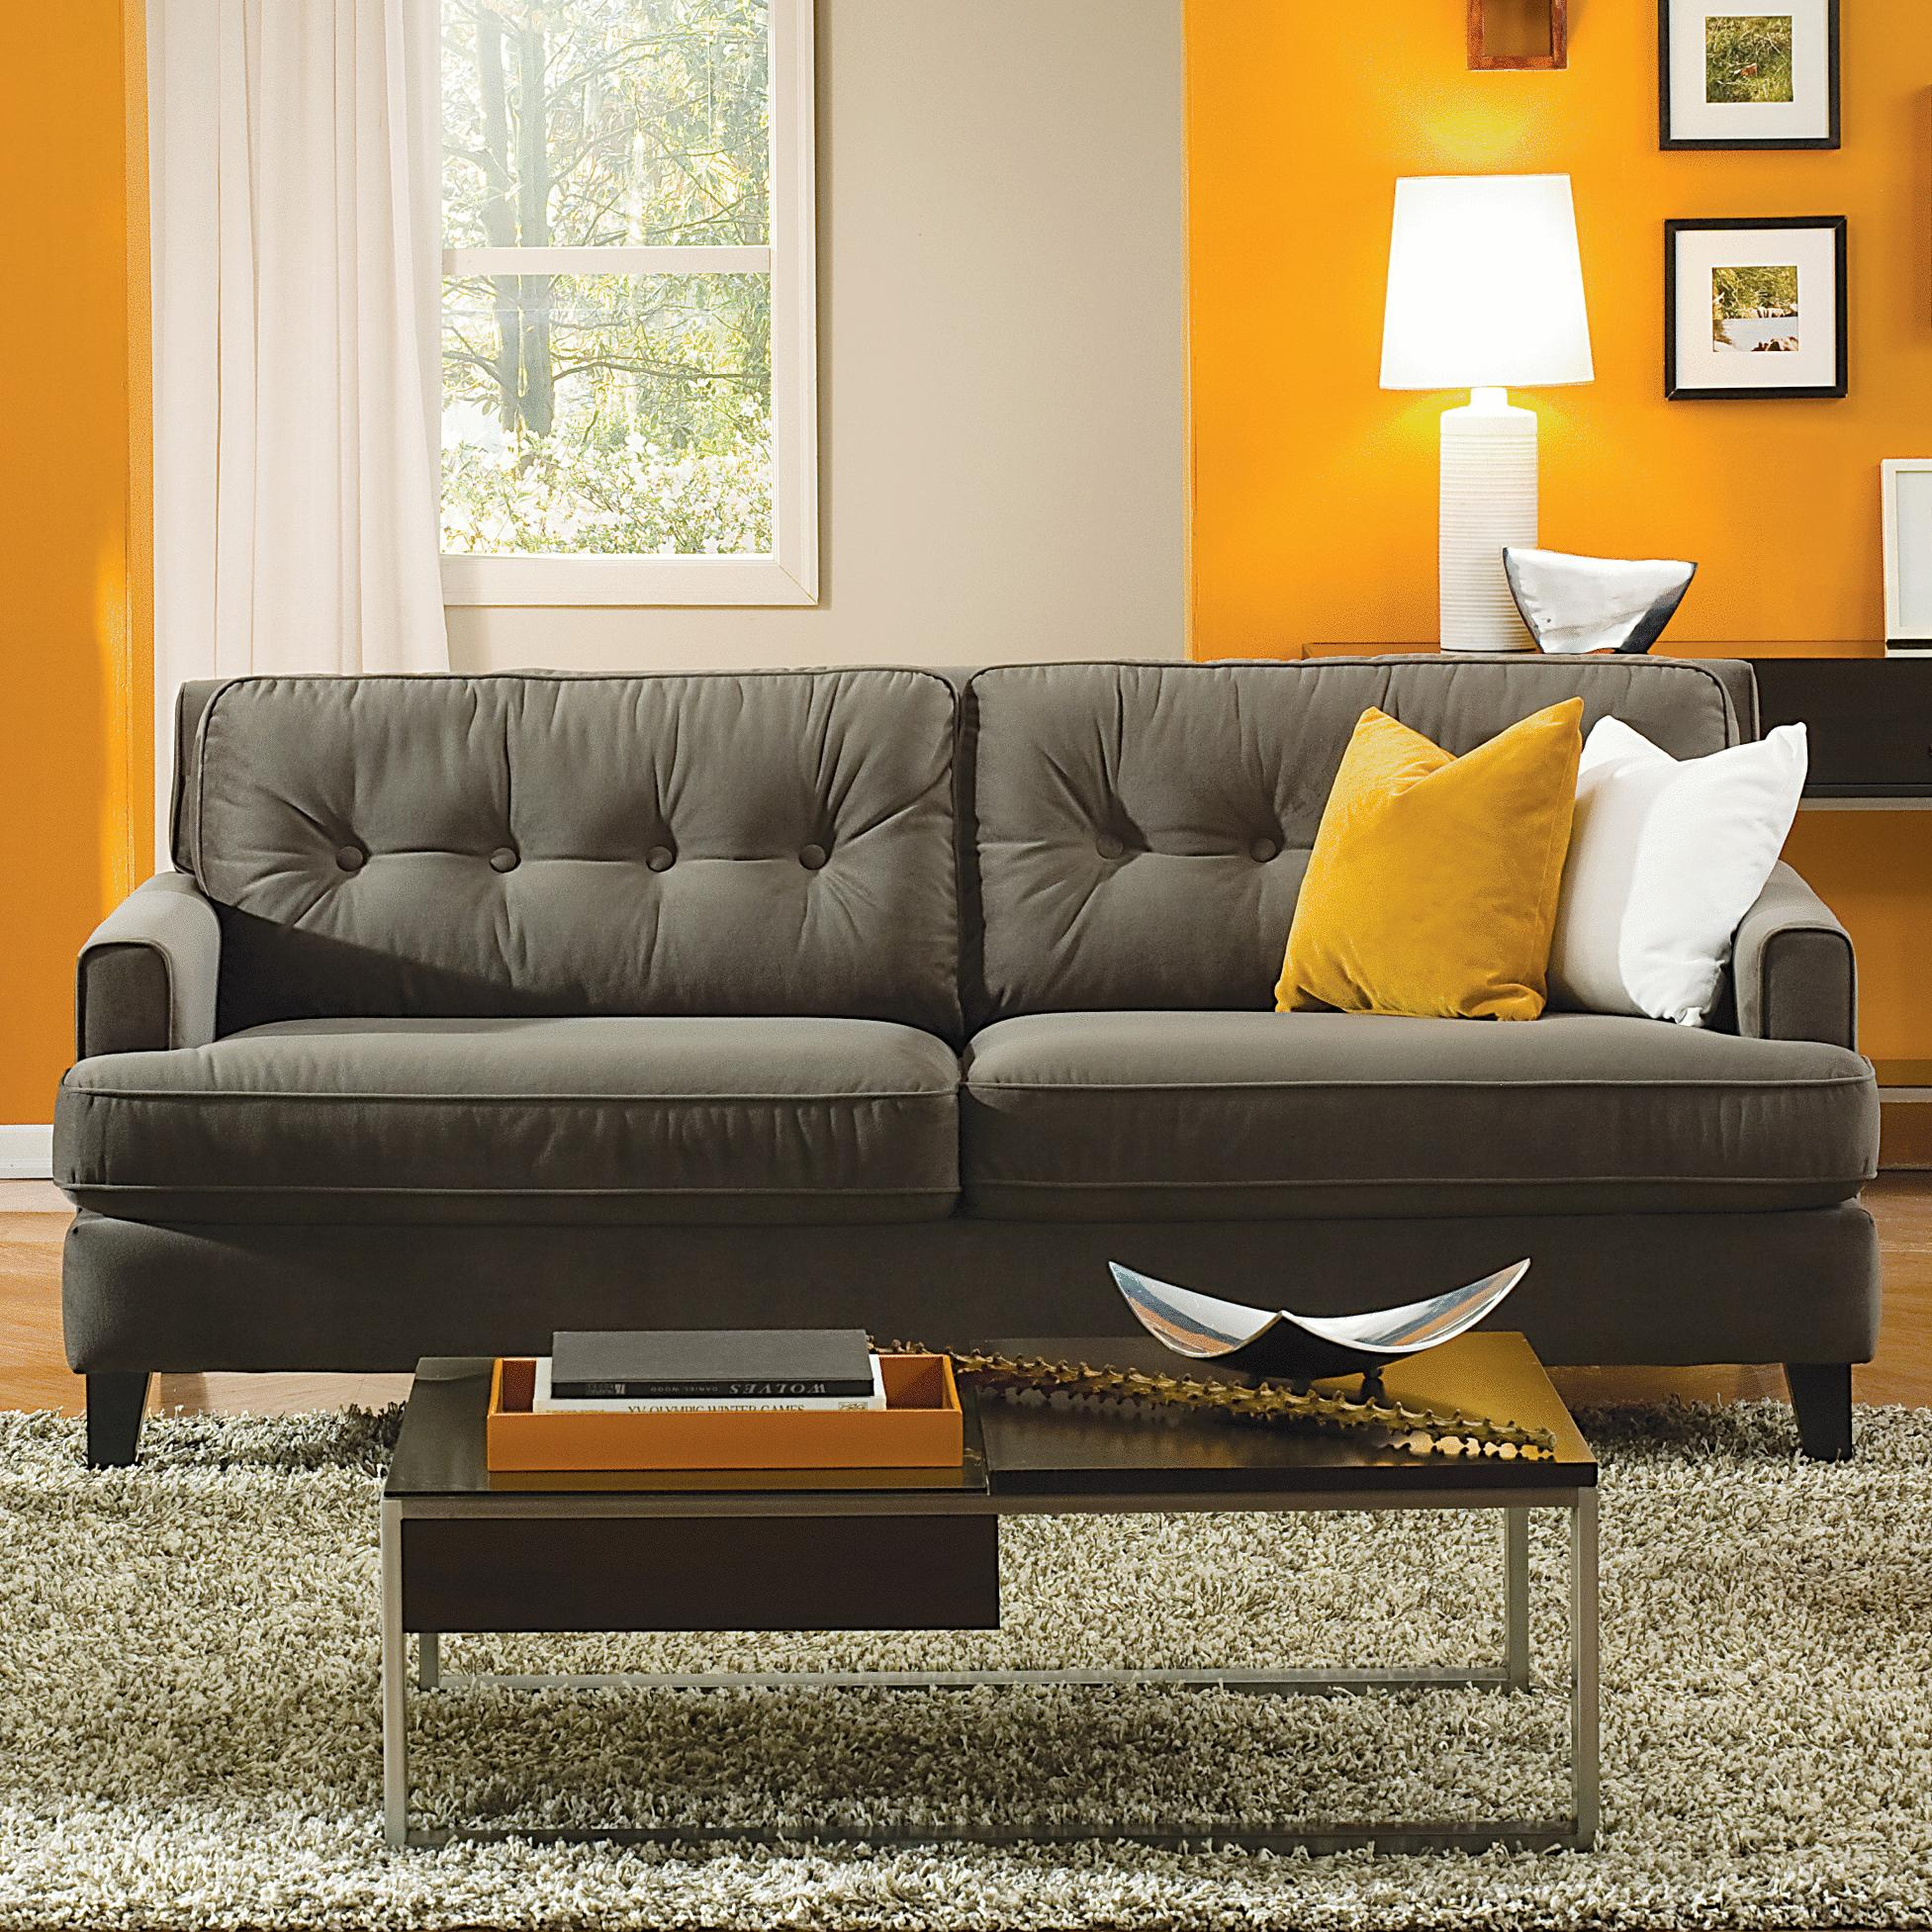 Palliser Barbara Transitional Apartment Sofa With Tapered Block Legs Jordan S Home Furnishings Sofas